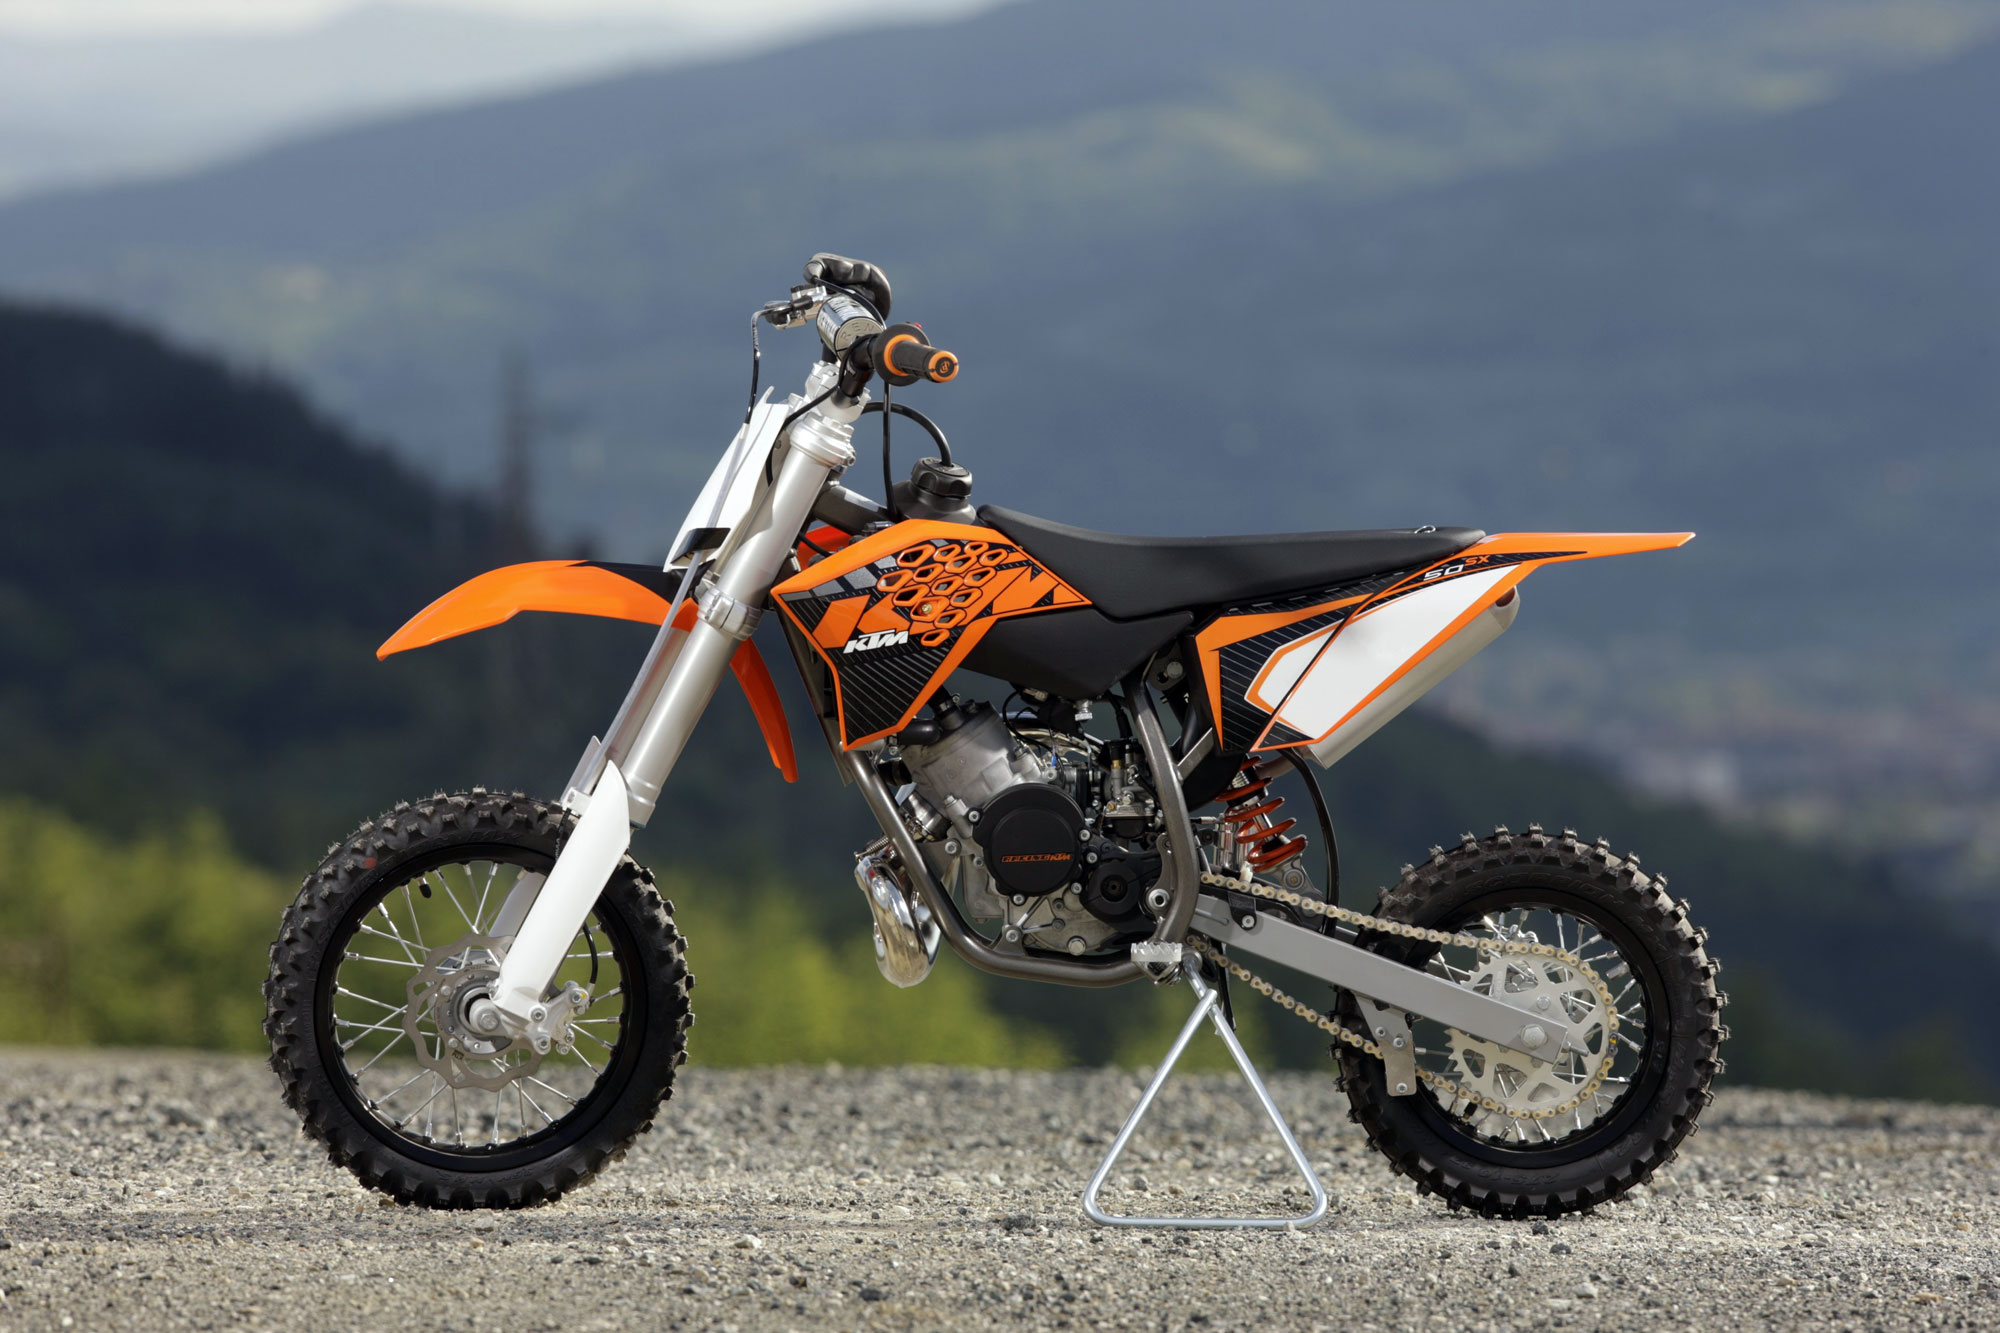 2013 KTM 50 Sx Manual Engine. 2012 KTM 50 Sx Moto Zombdrive Rh 2013 125. KTM. KTM 50 Dirt Bike Diagram At Scoala.co